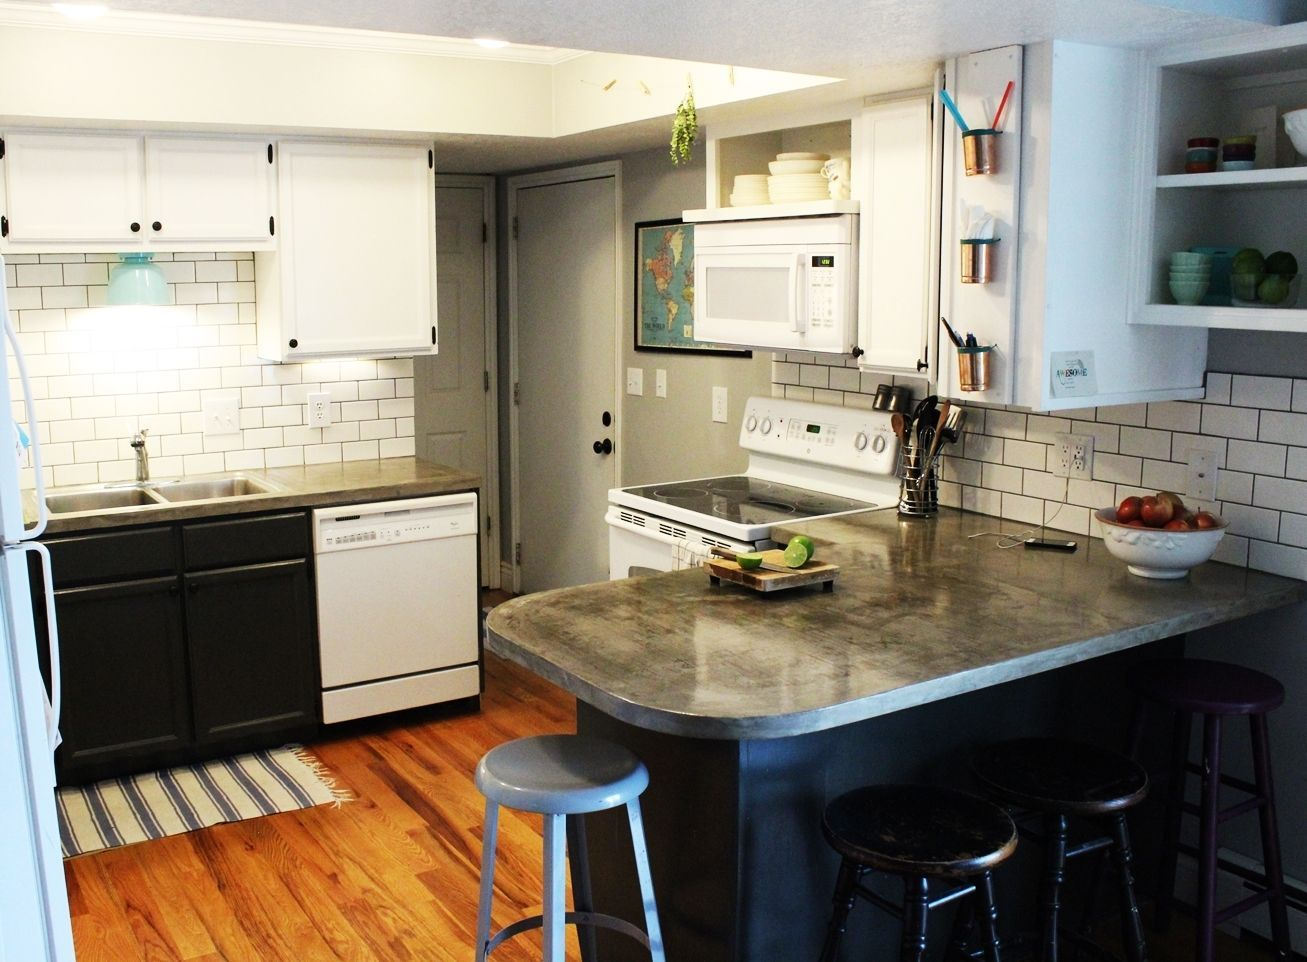 Overall Kitchen Pictures with Subway Tile Backsplash and Concrete Countertop